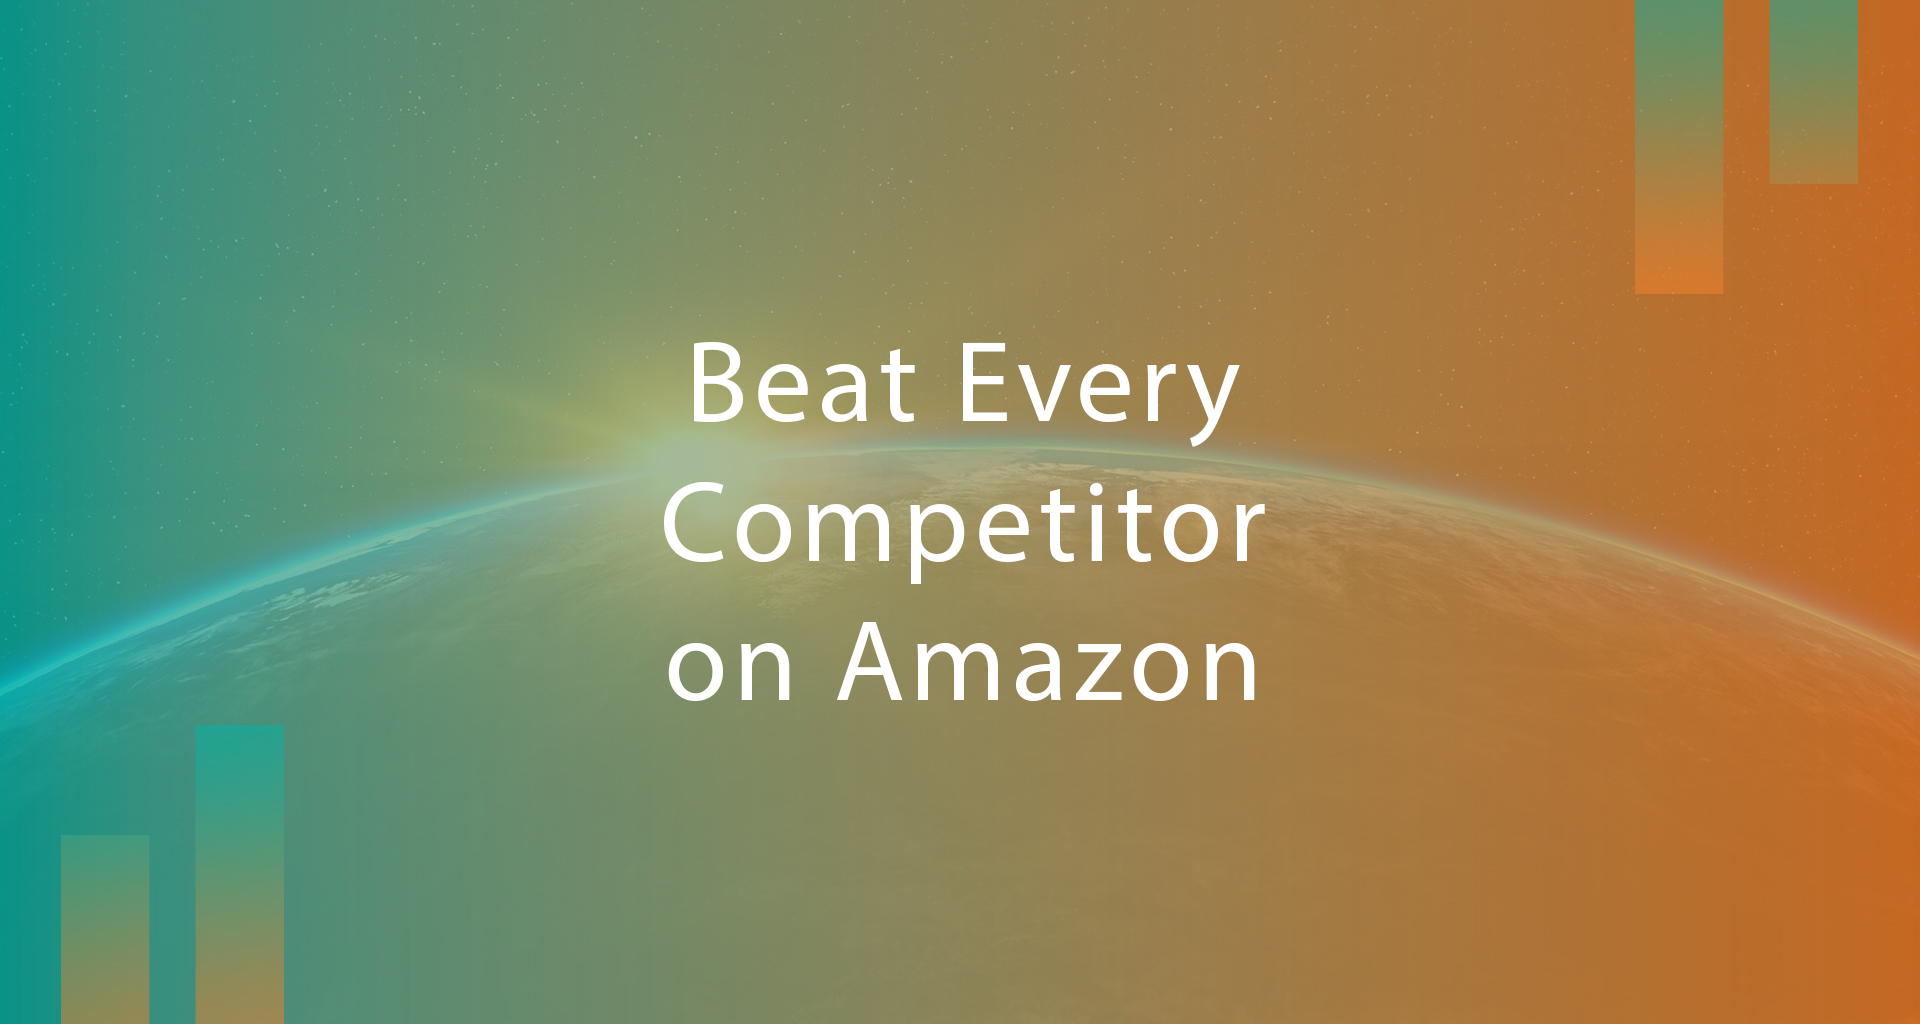 5 WAYS TO BEAT EVERY COMPETITOR ON AMAZON!